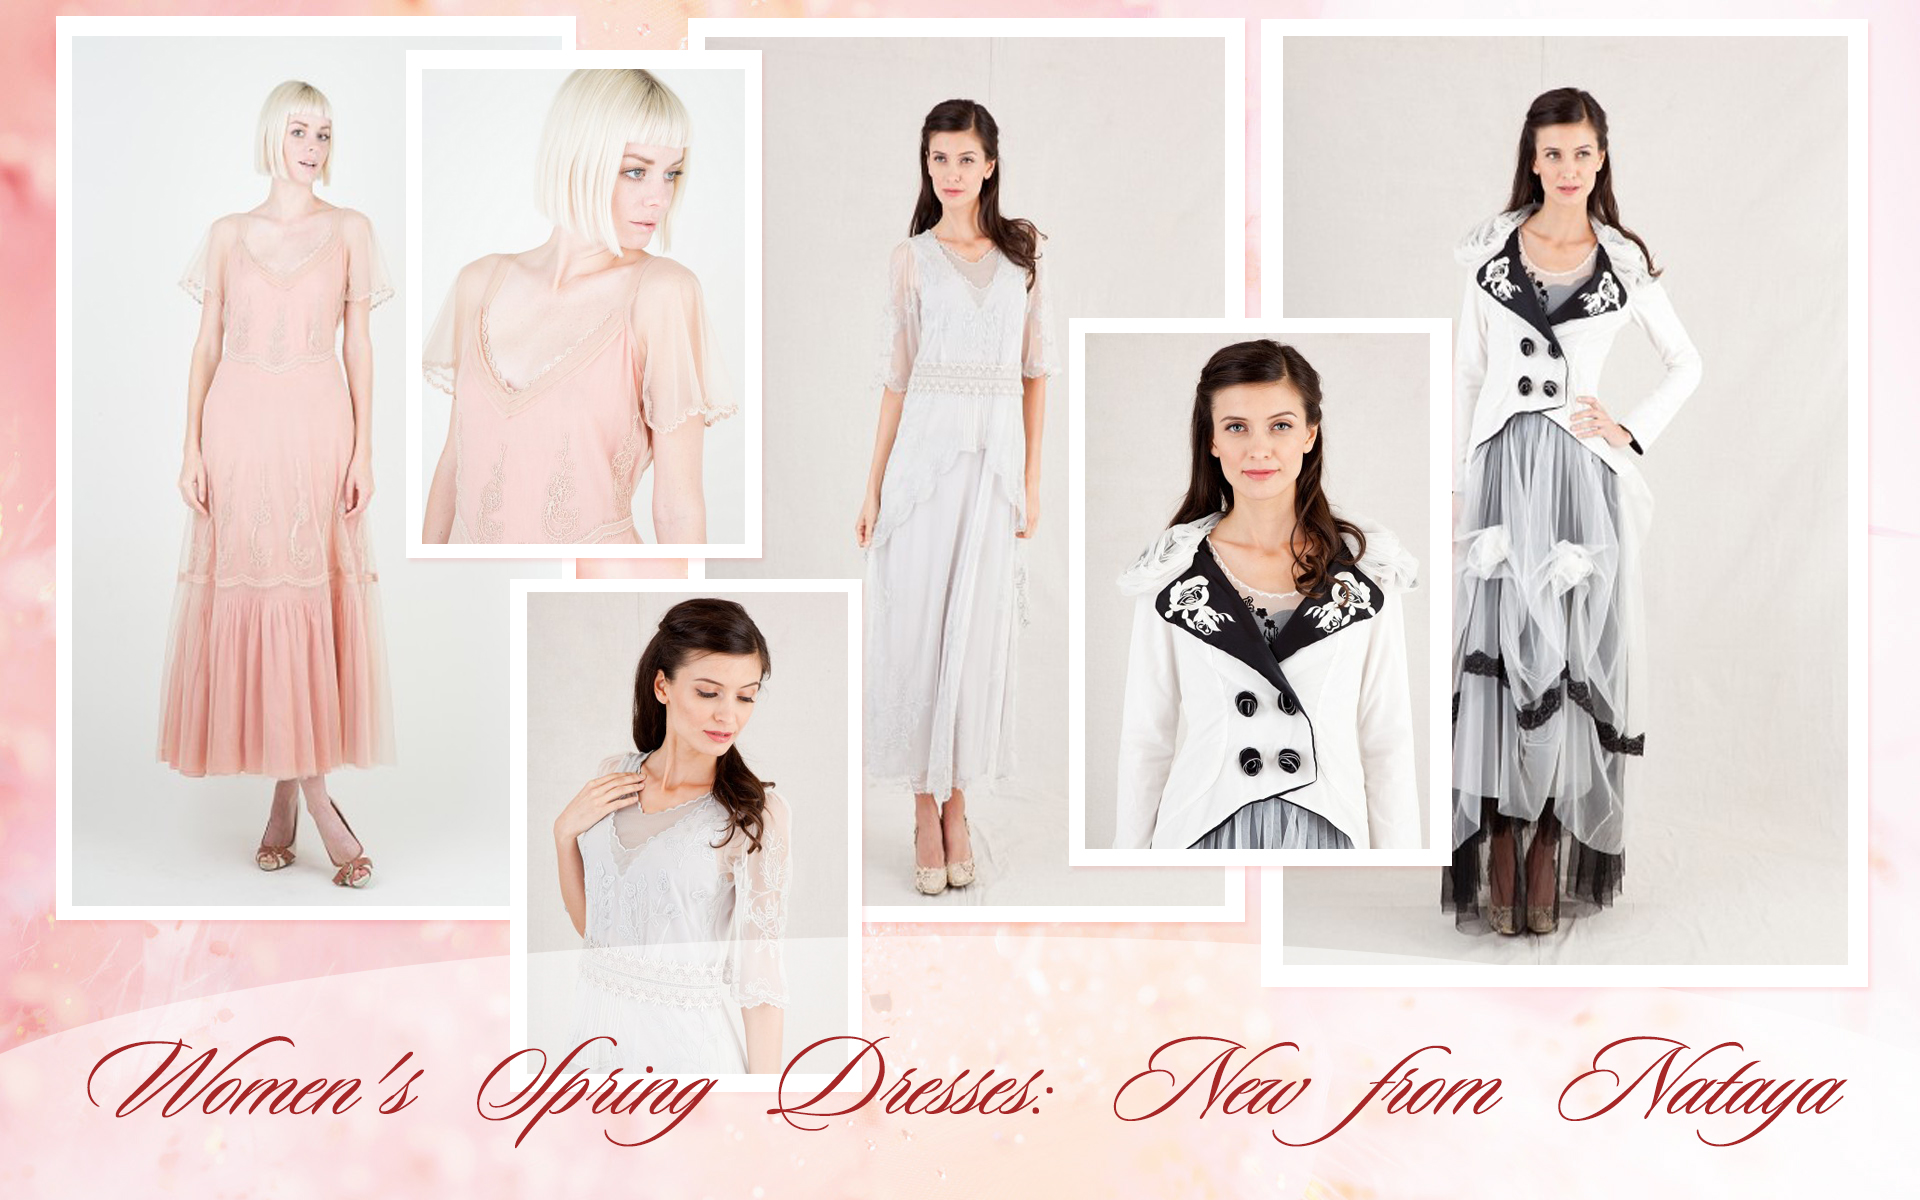 Women's Spring Dresses: New from Nataya